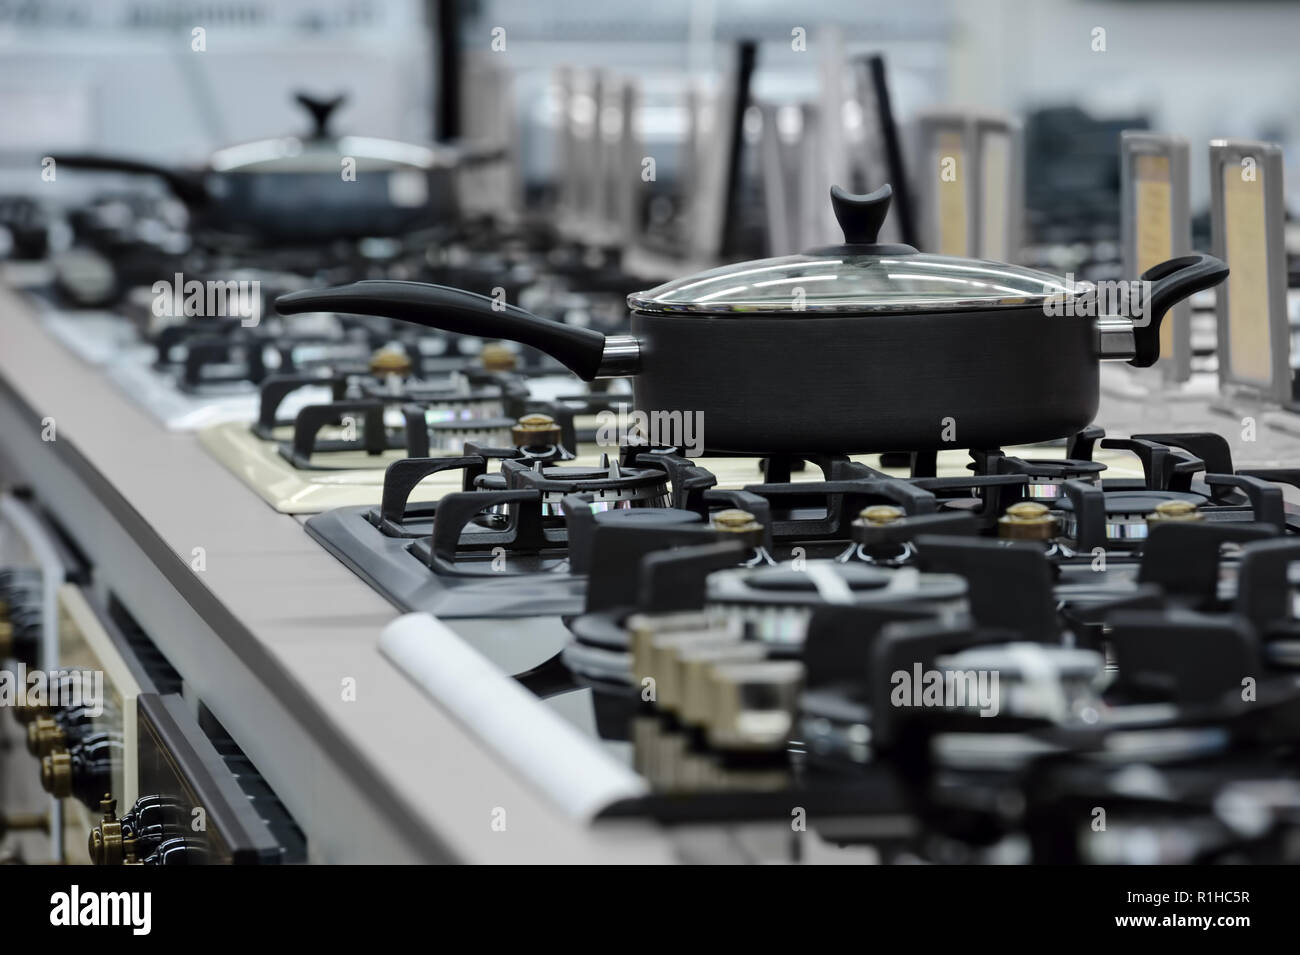 Brand new gas stove panels at appliance store - Stock Image